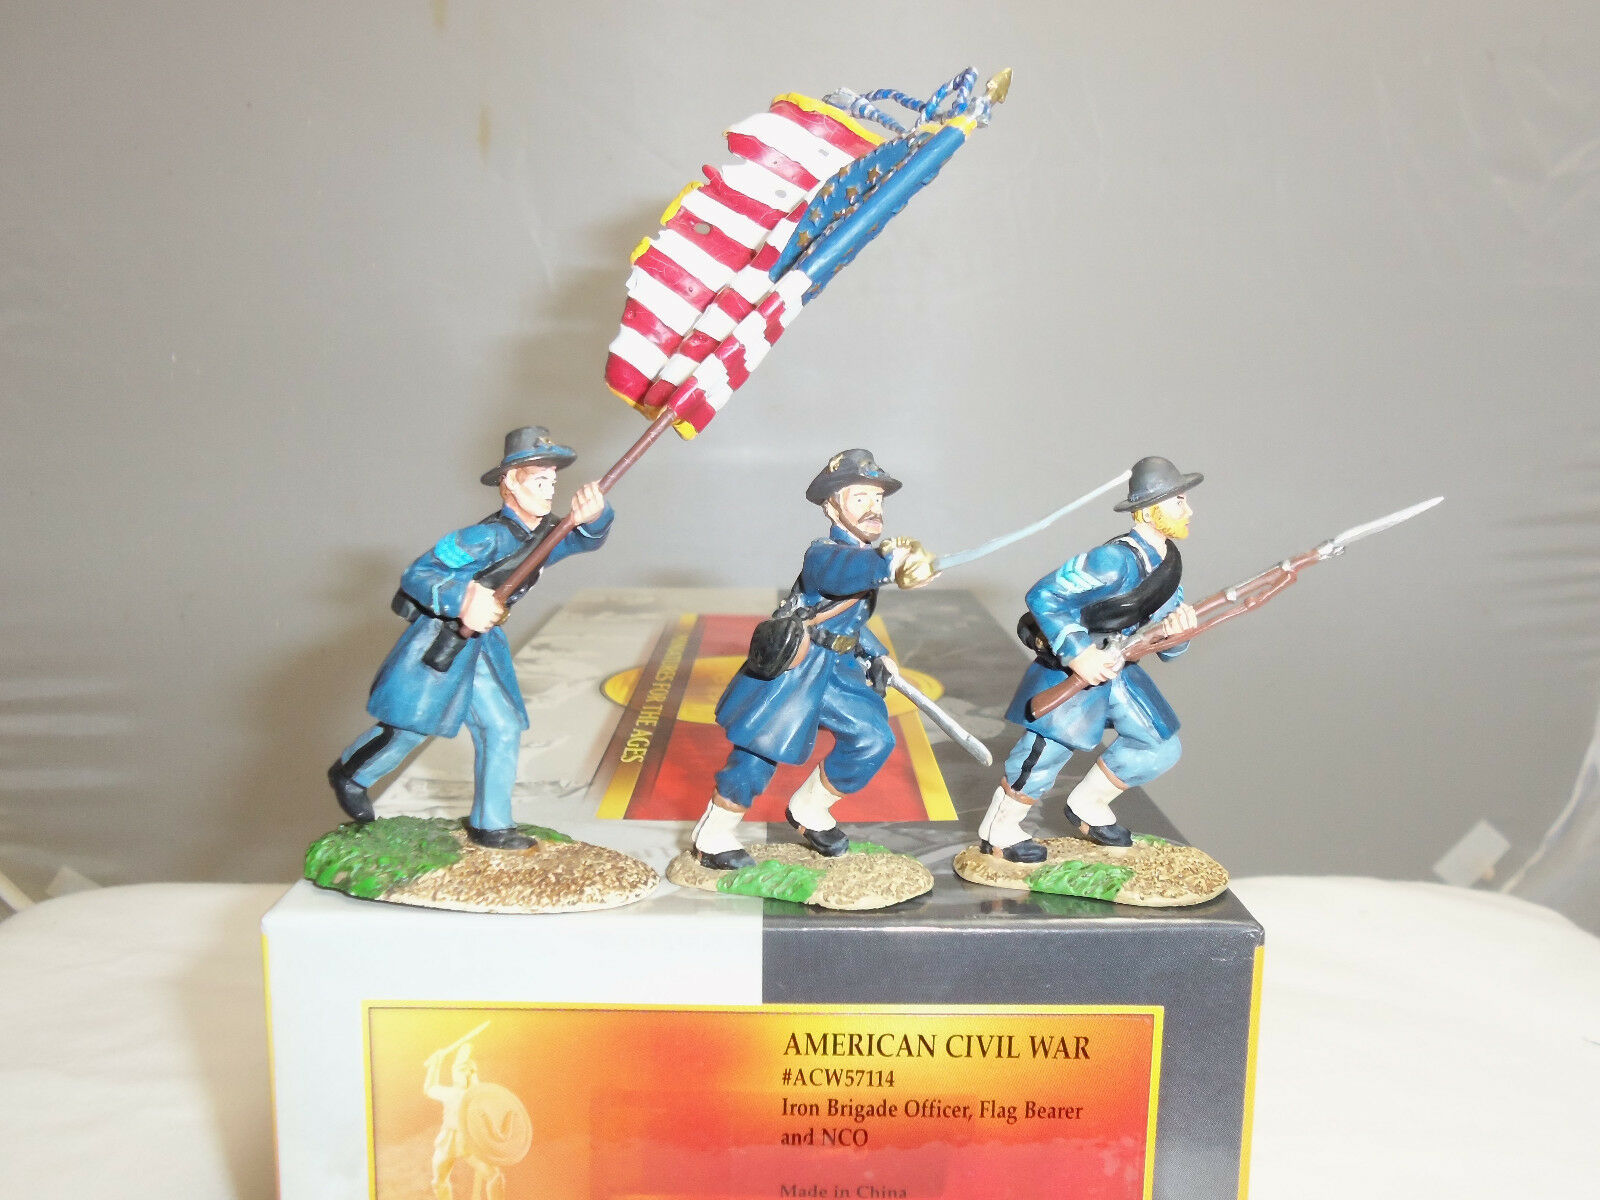 CONTE ACW57114 IRON BRIGADE OFFICER FLAGBEARER + NCO TOY SOLDIER FIGURE SET